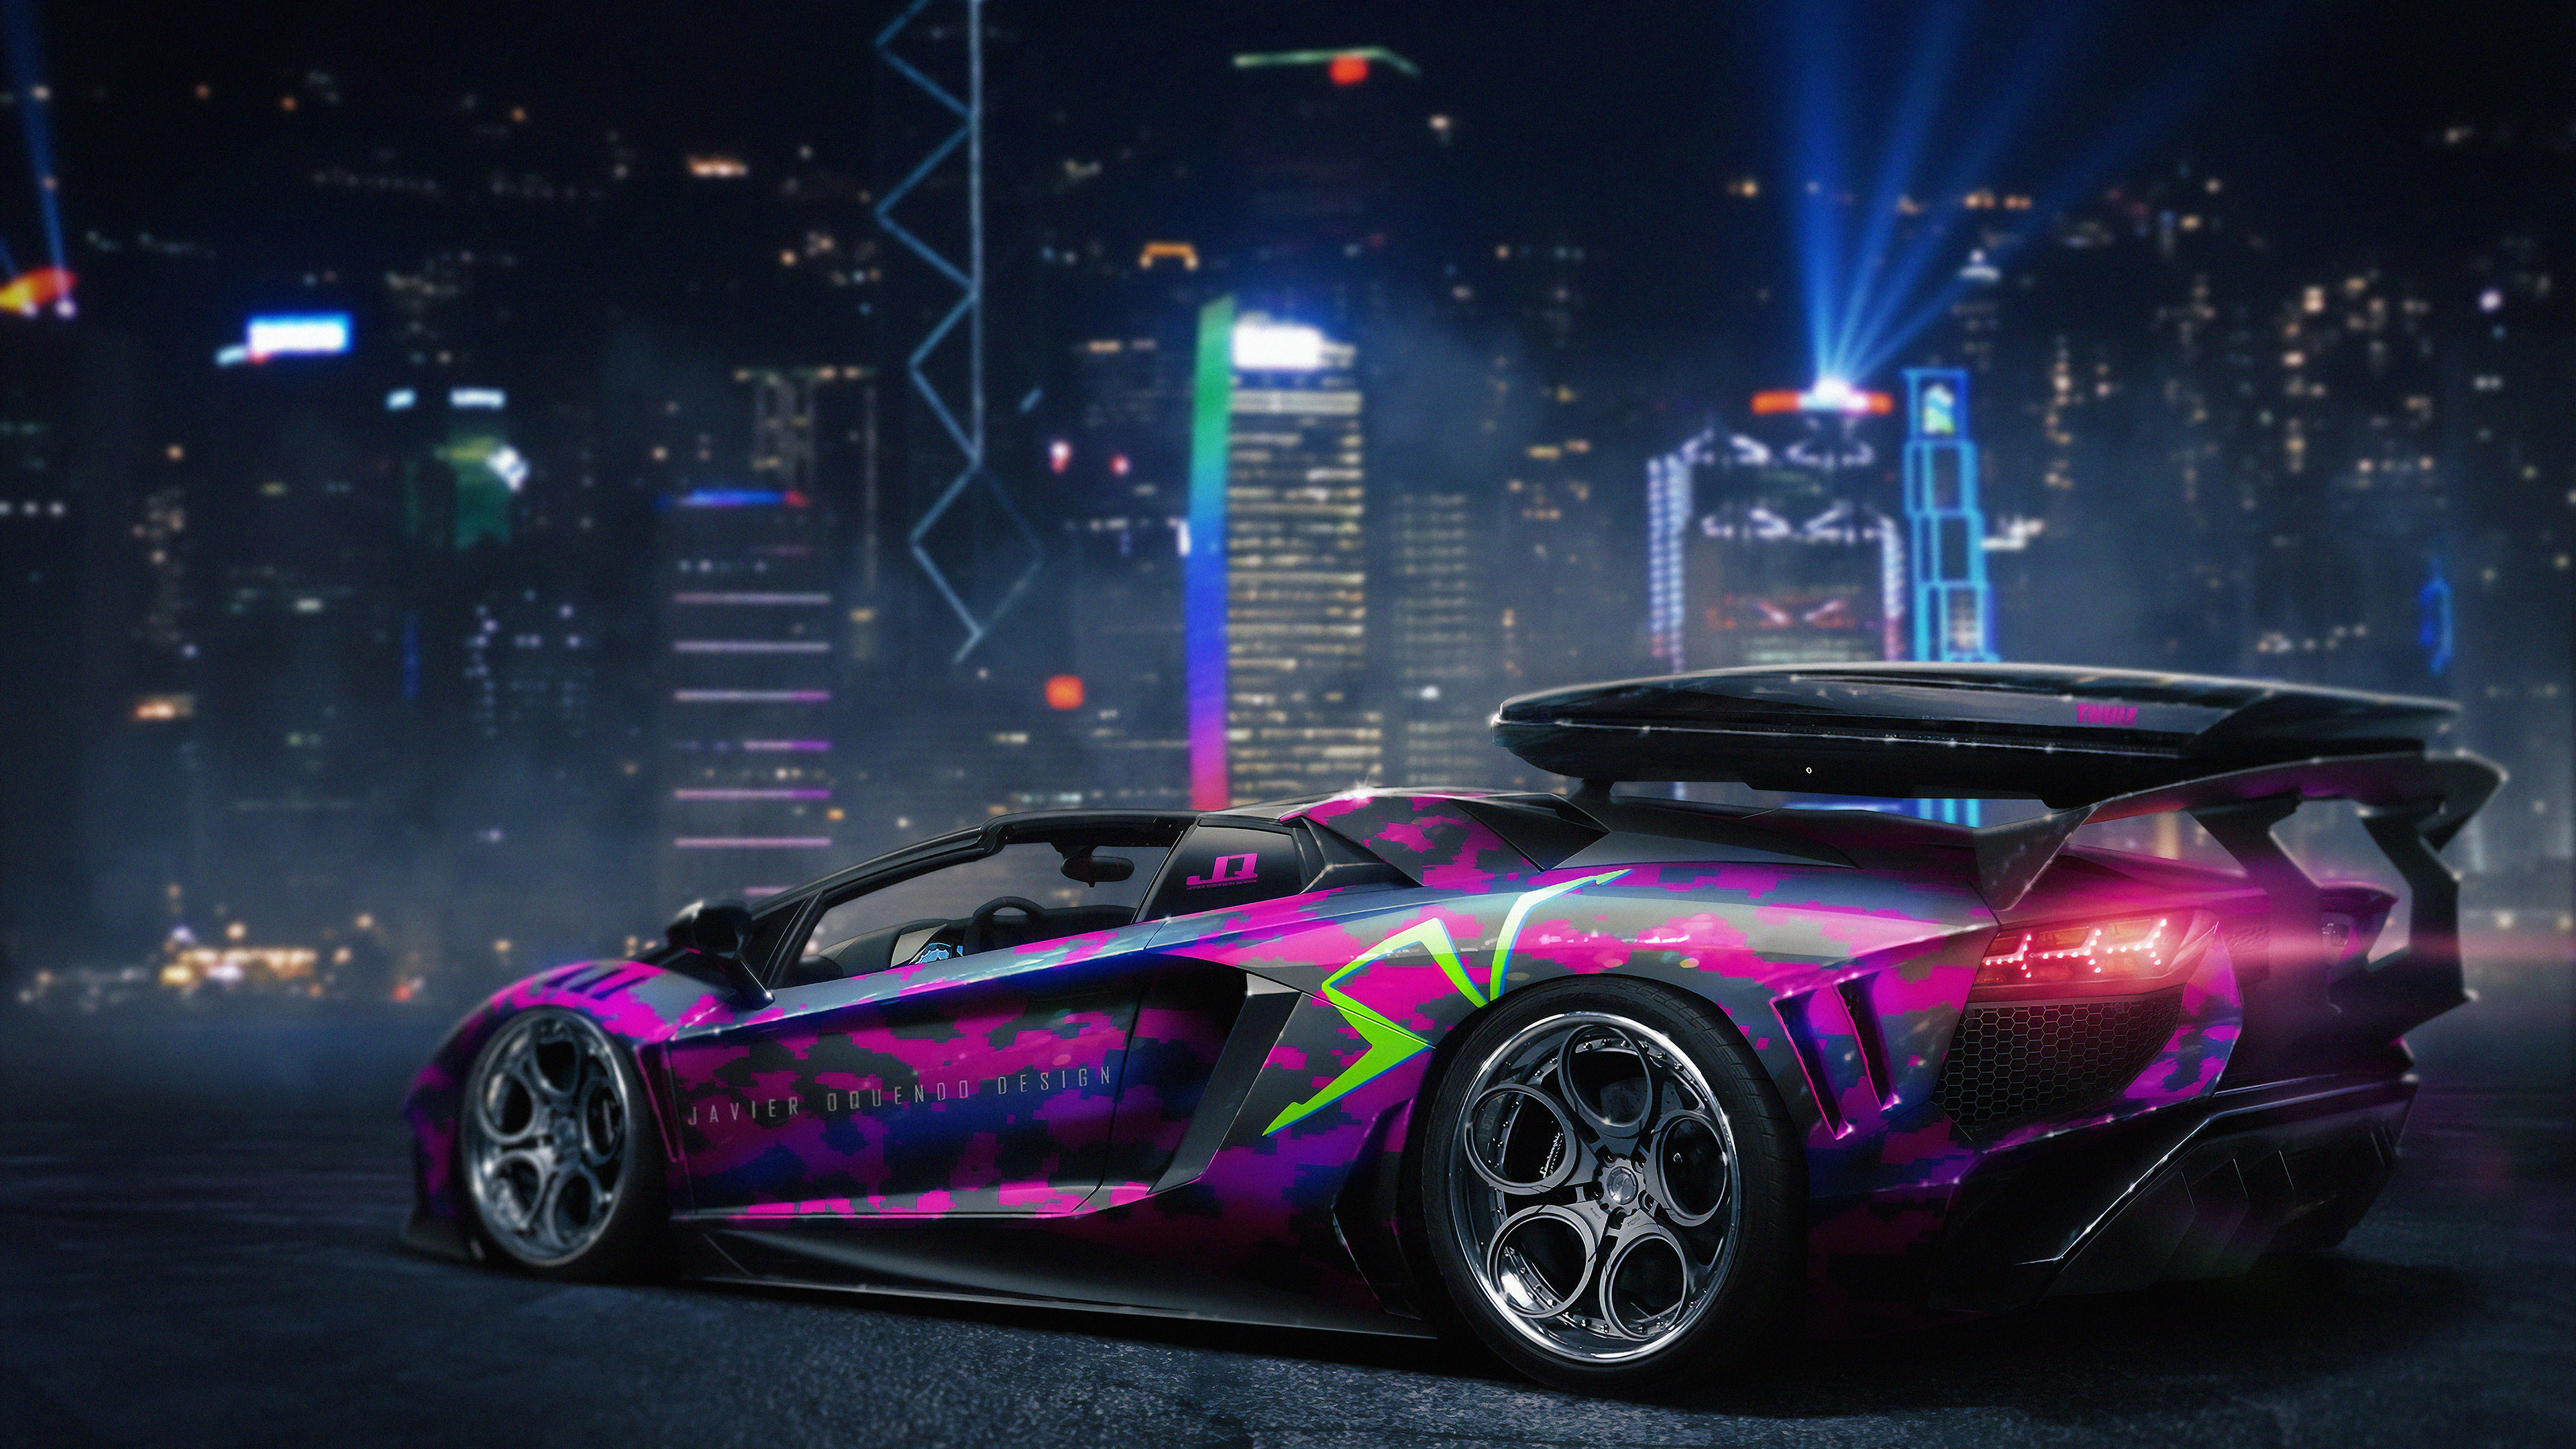 lamborghini aventador sv modified cgi art 1565054957 - Lamborghini Aventador Sv Modified Cgi Art - lamborghini wallpapers, lamborghini aventador wallpapers, hd-wallpapers, digital art wallpapers, cars wallpapers, artwork wallpapers, artstation wallpapers, artist wallpapers, 4k-wallpapers